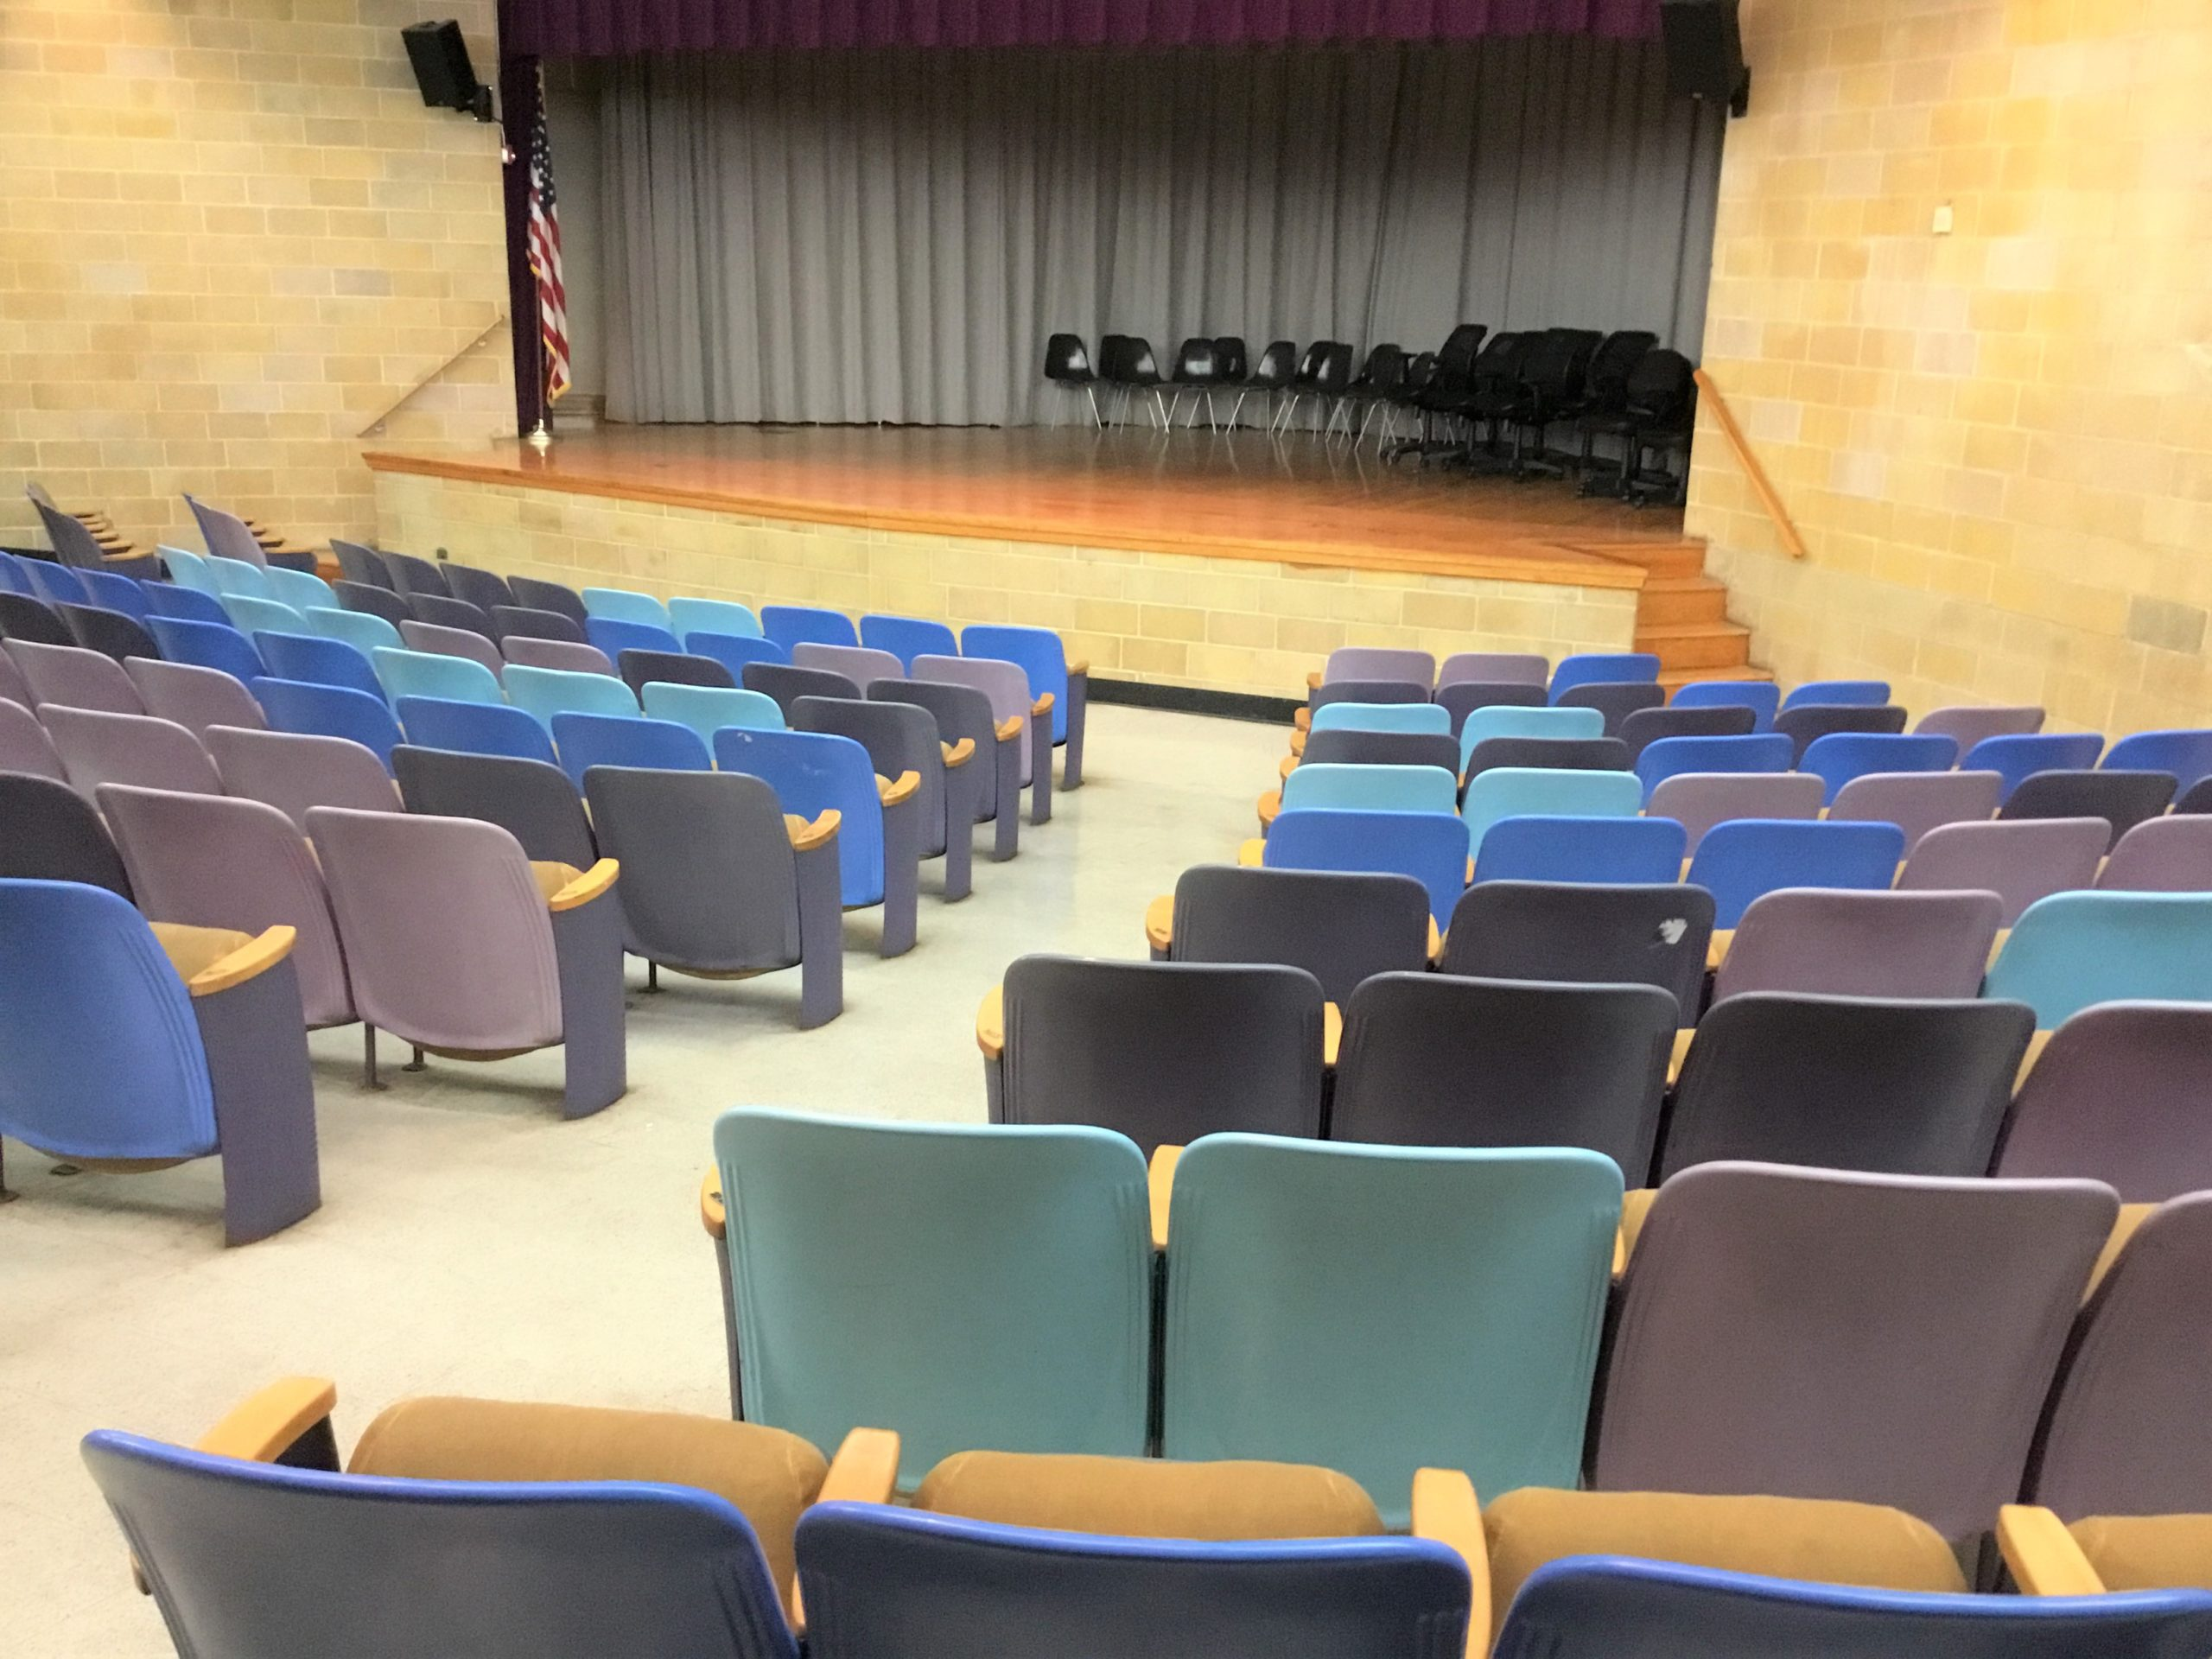 Will Auditorium